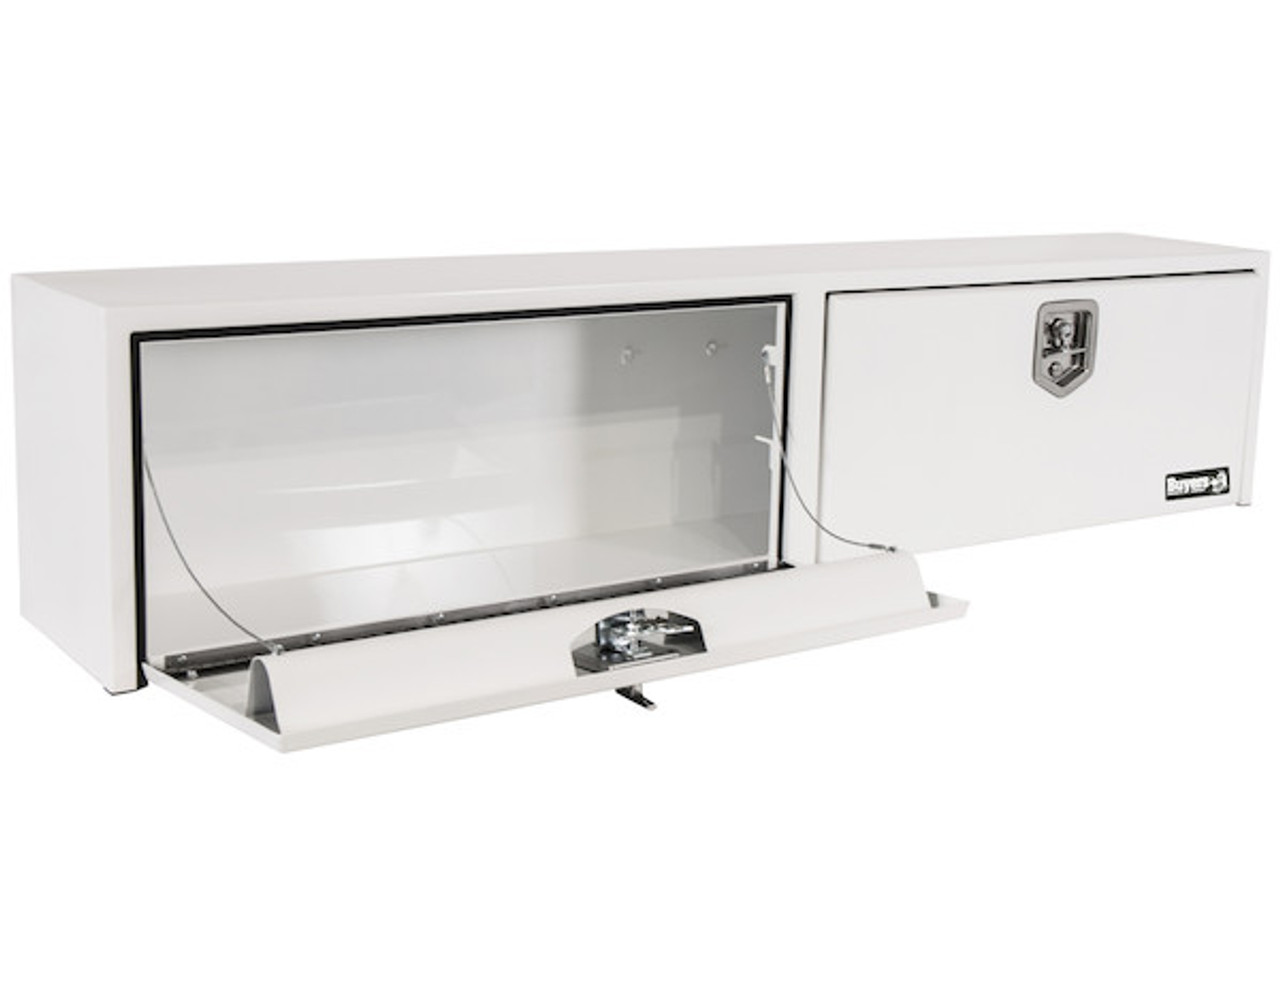 1702840 BUYERS PRODUCTS WHITE STEEL TOPSIDER TRUCK BOX TOOLBOX